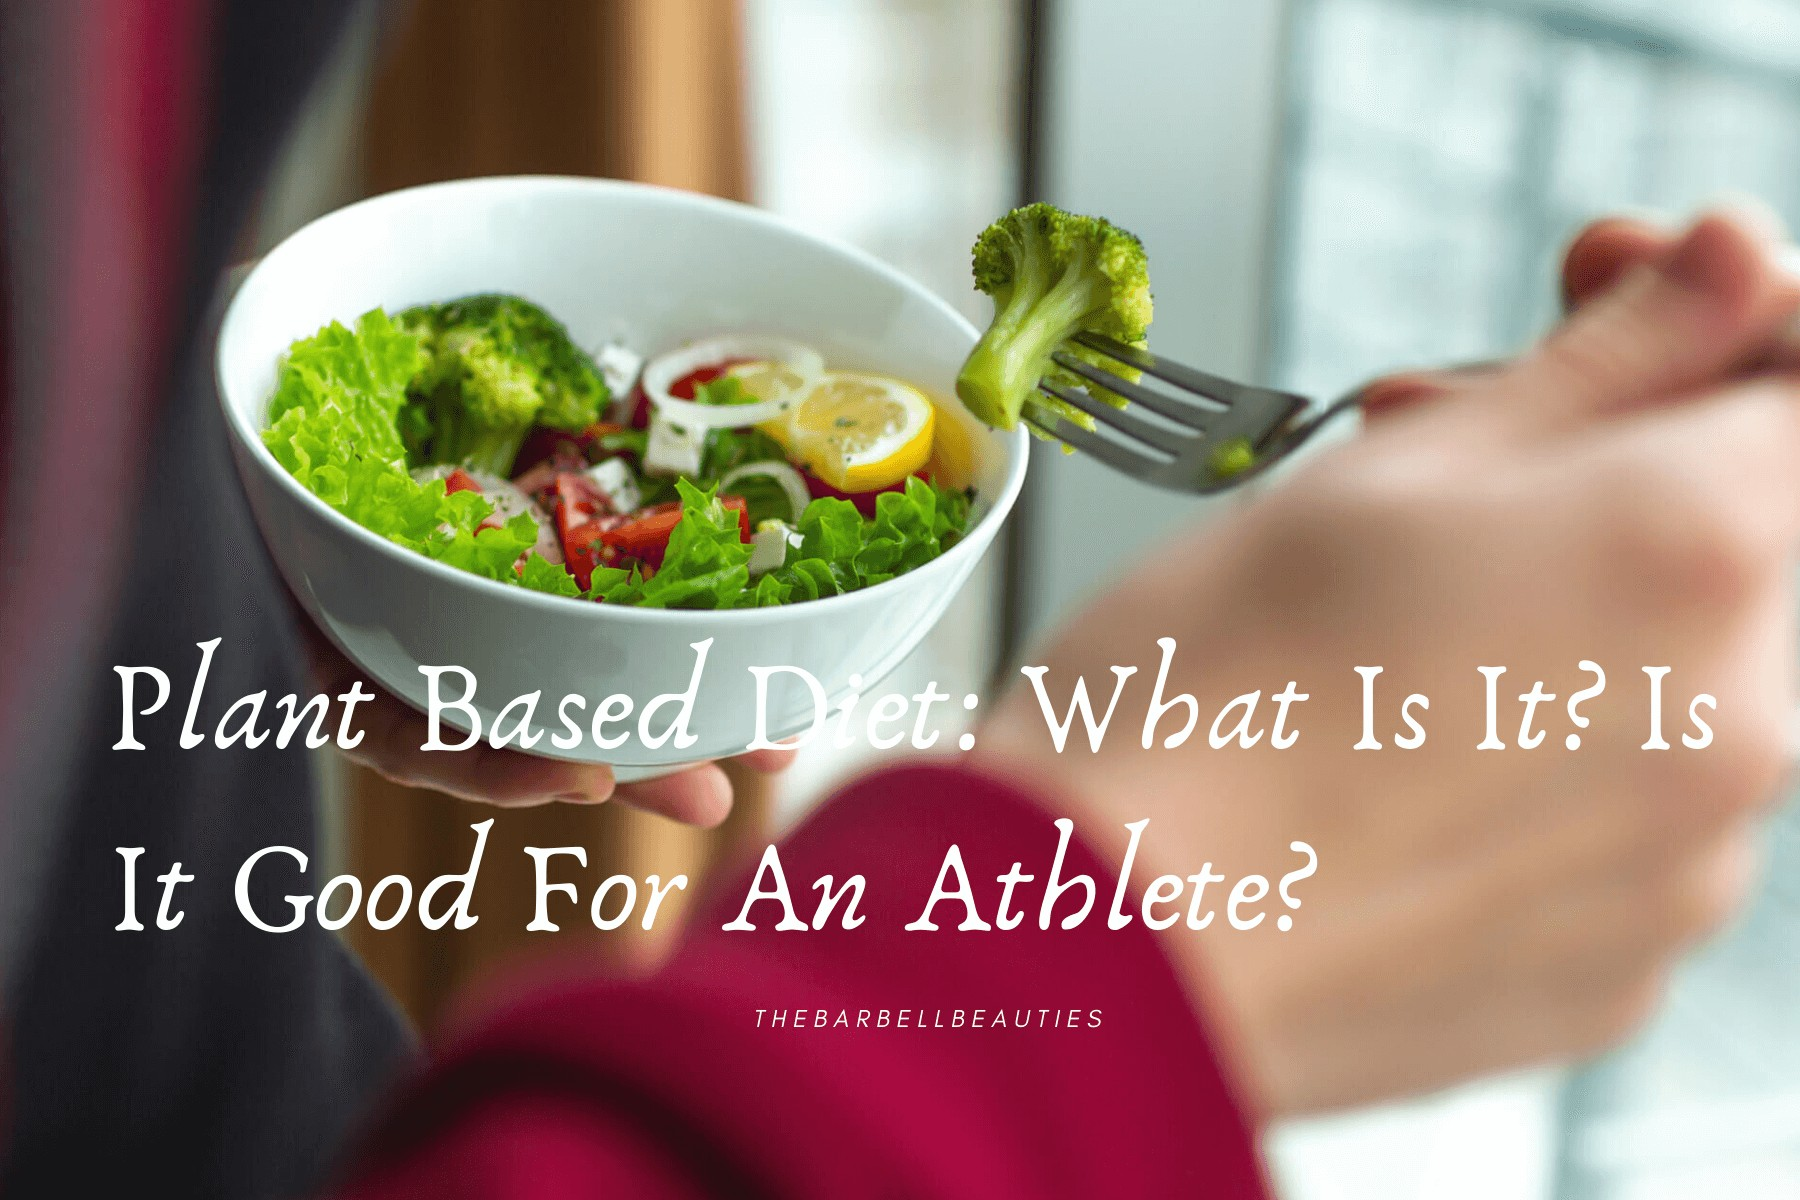 Plant Based Diet: What Is It? Is It Good For An Athlete?